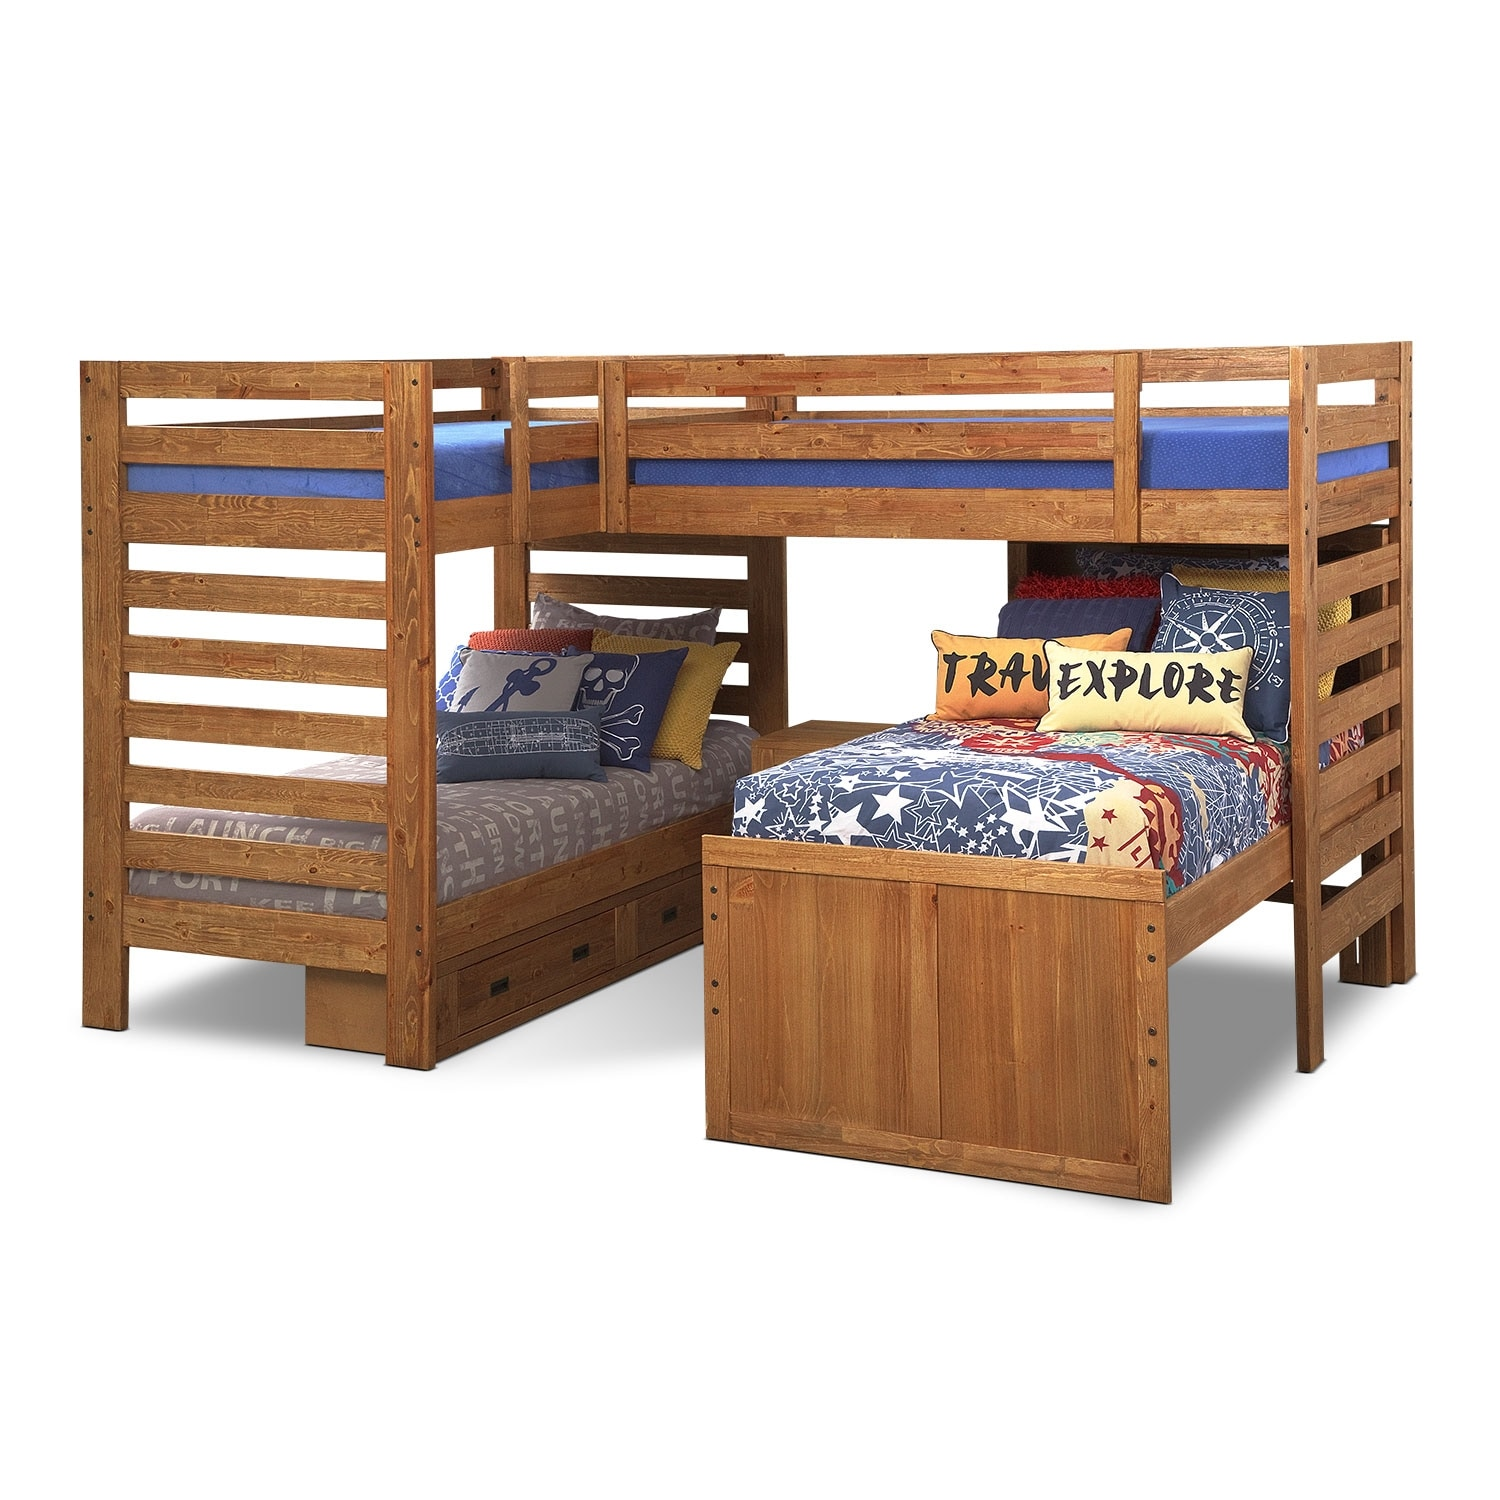 Traveler Twin Bedding Set